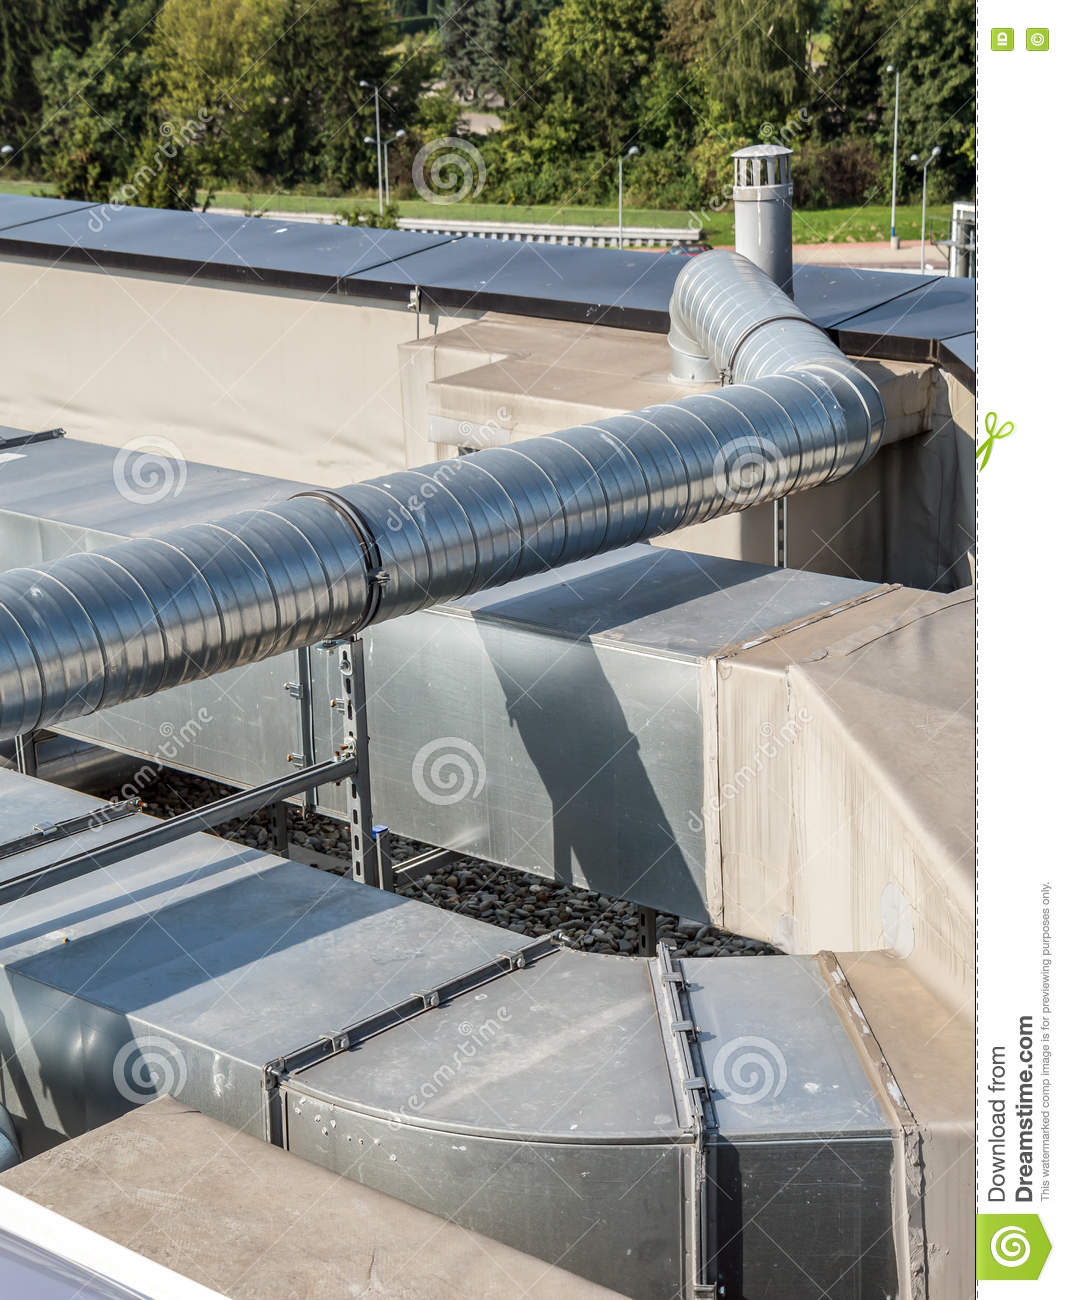 Furnace Air Ducts : Ac pipes and ducts stock photo image of outdoors